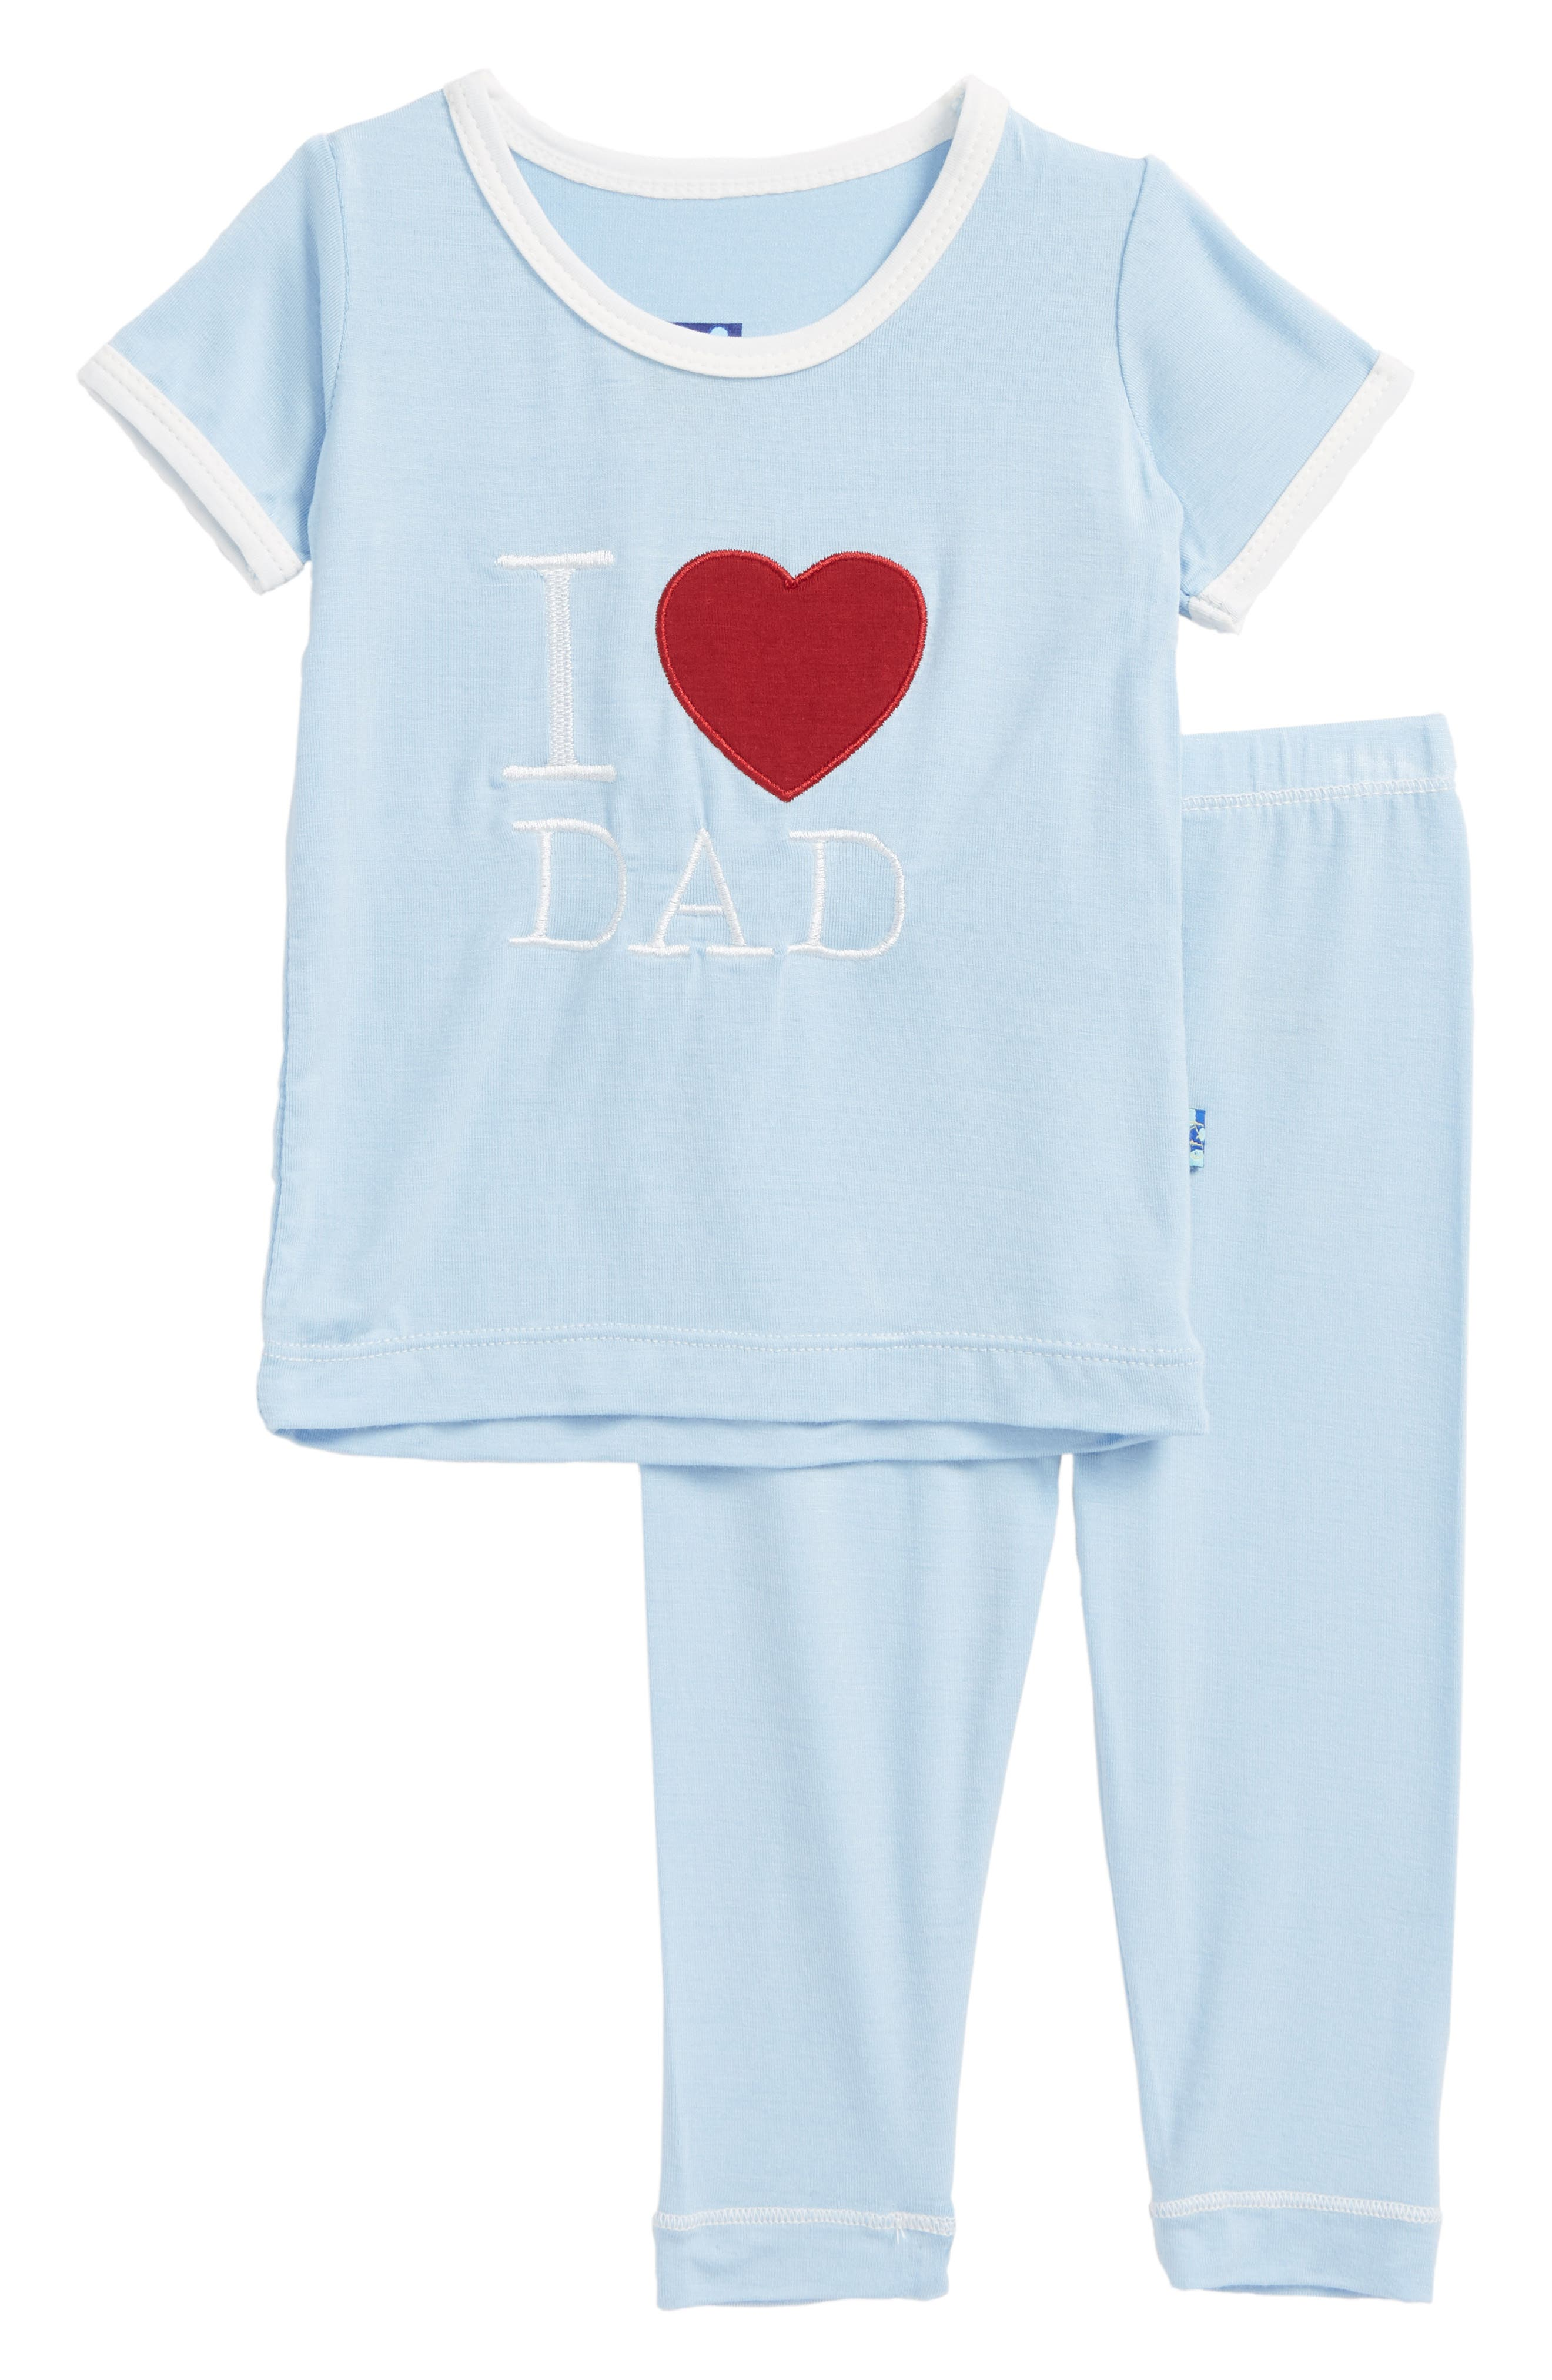 Two-Piece Fitted Pajamas,                             Main thumbnail 1, color,                             400